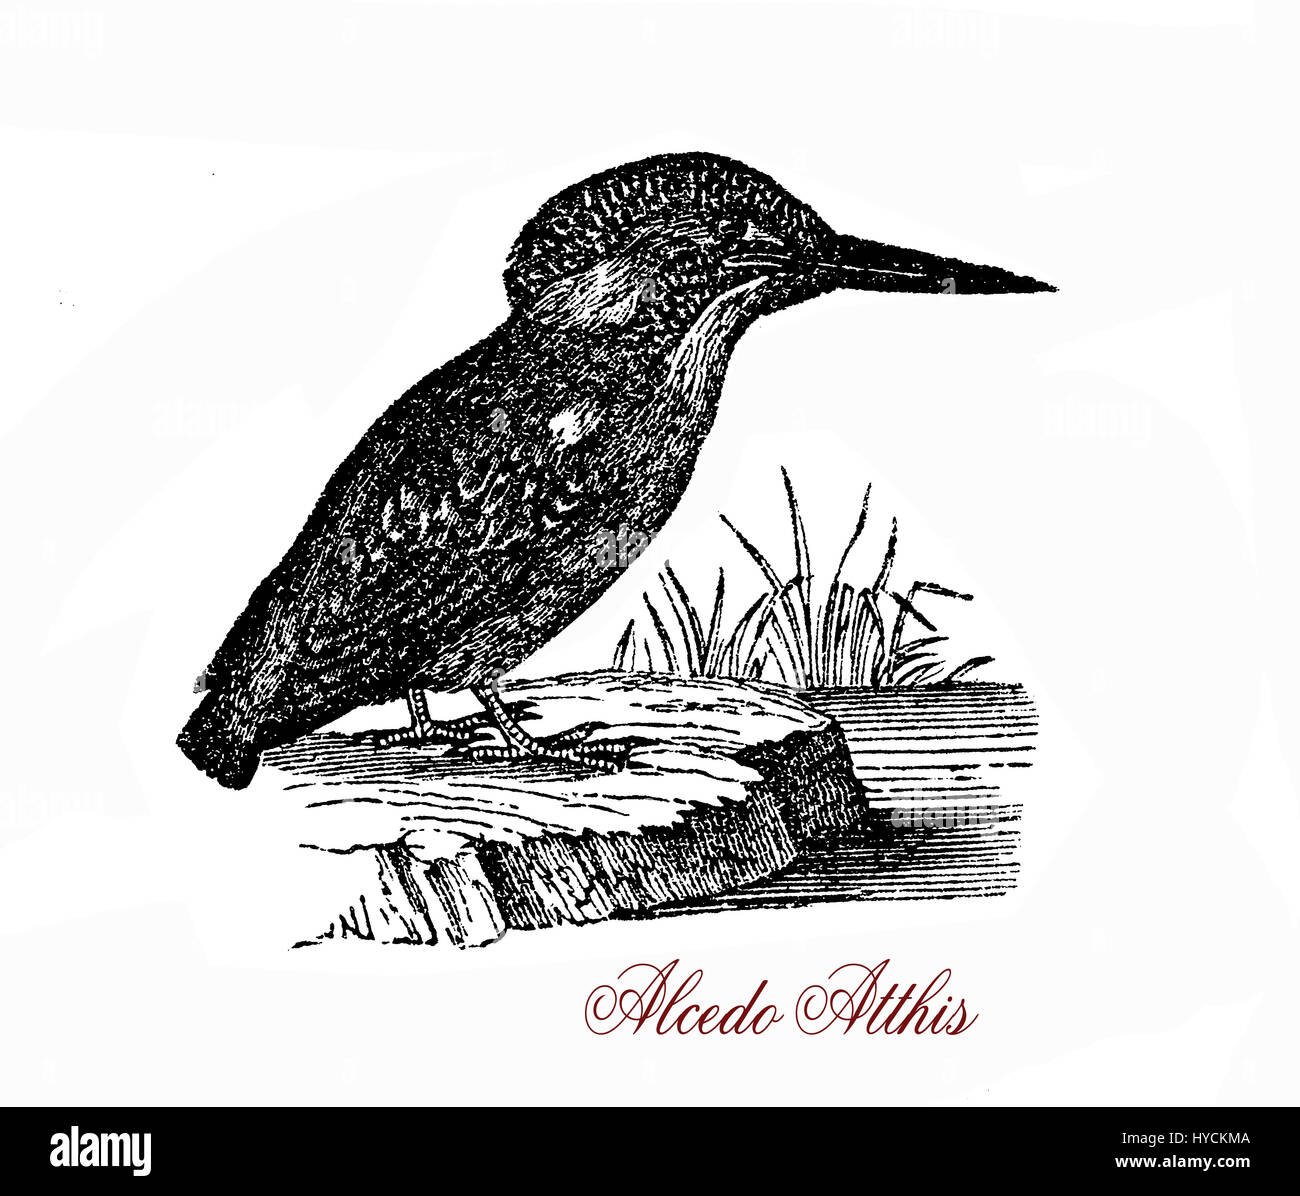 Wildlife vintage engraving of Common kingfisher, small fish-eating bird of vivid blue and orange colors and long - Stock Image